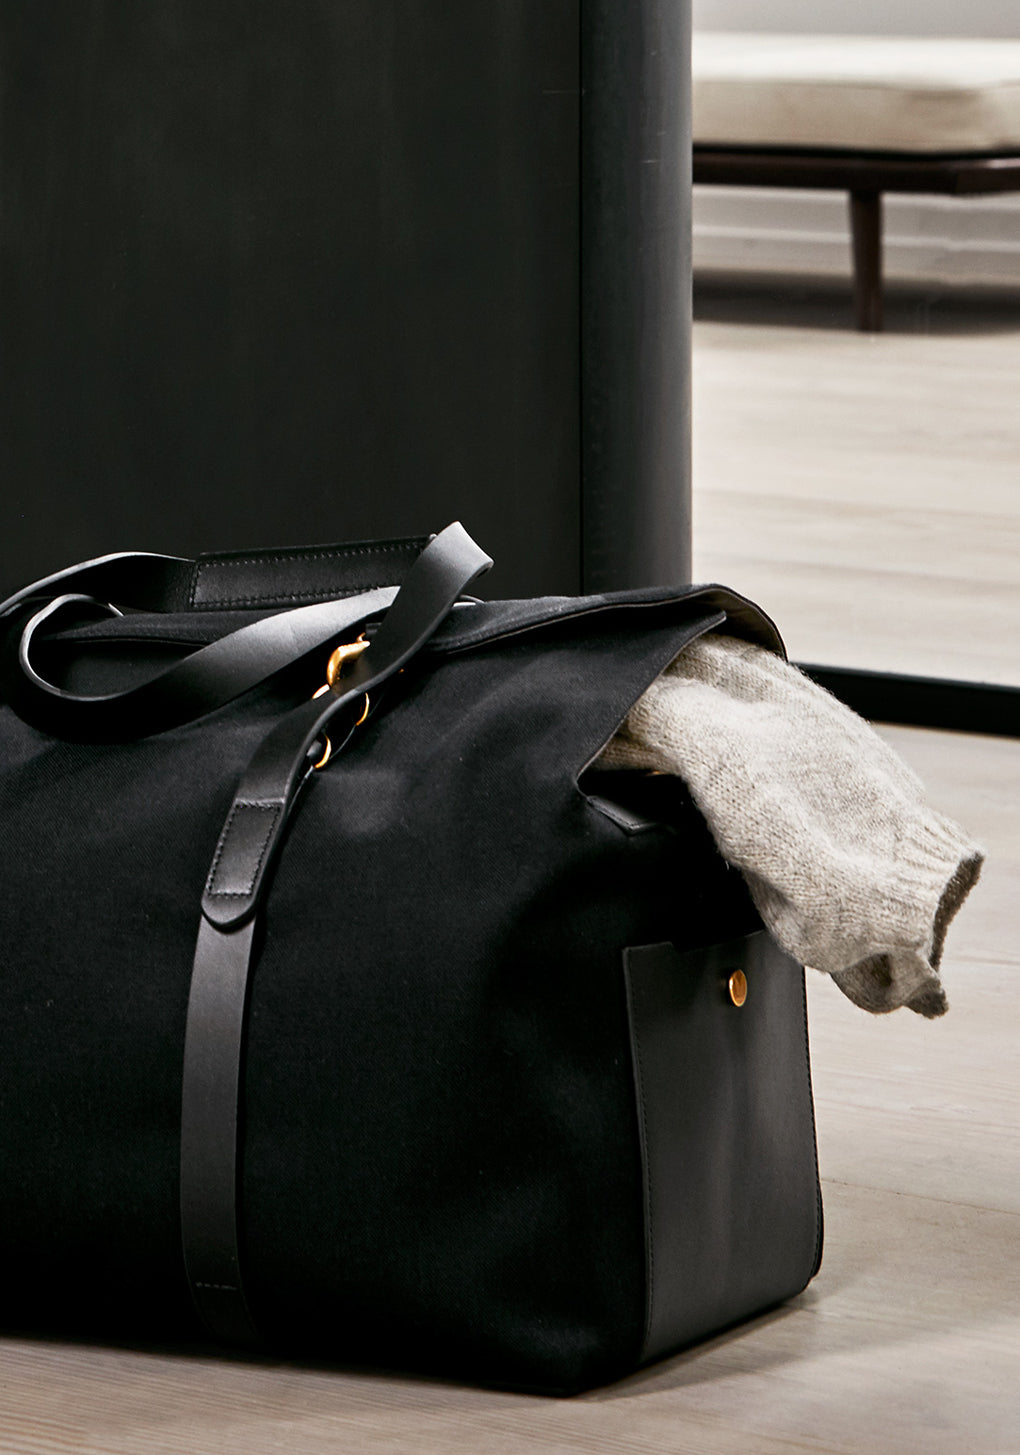 M/S Drop bag - Coal/Black collection 1